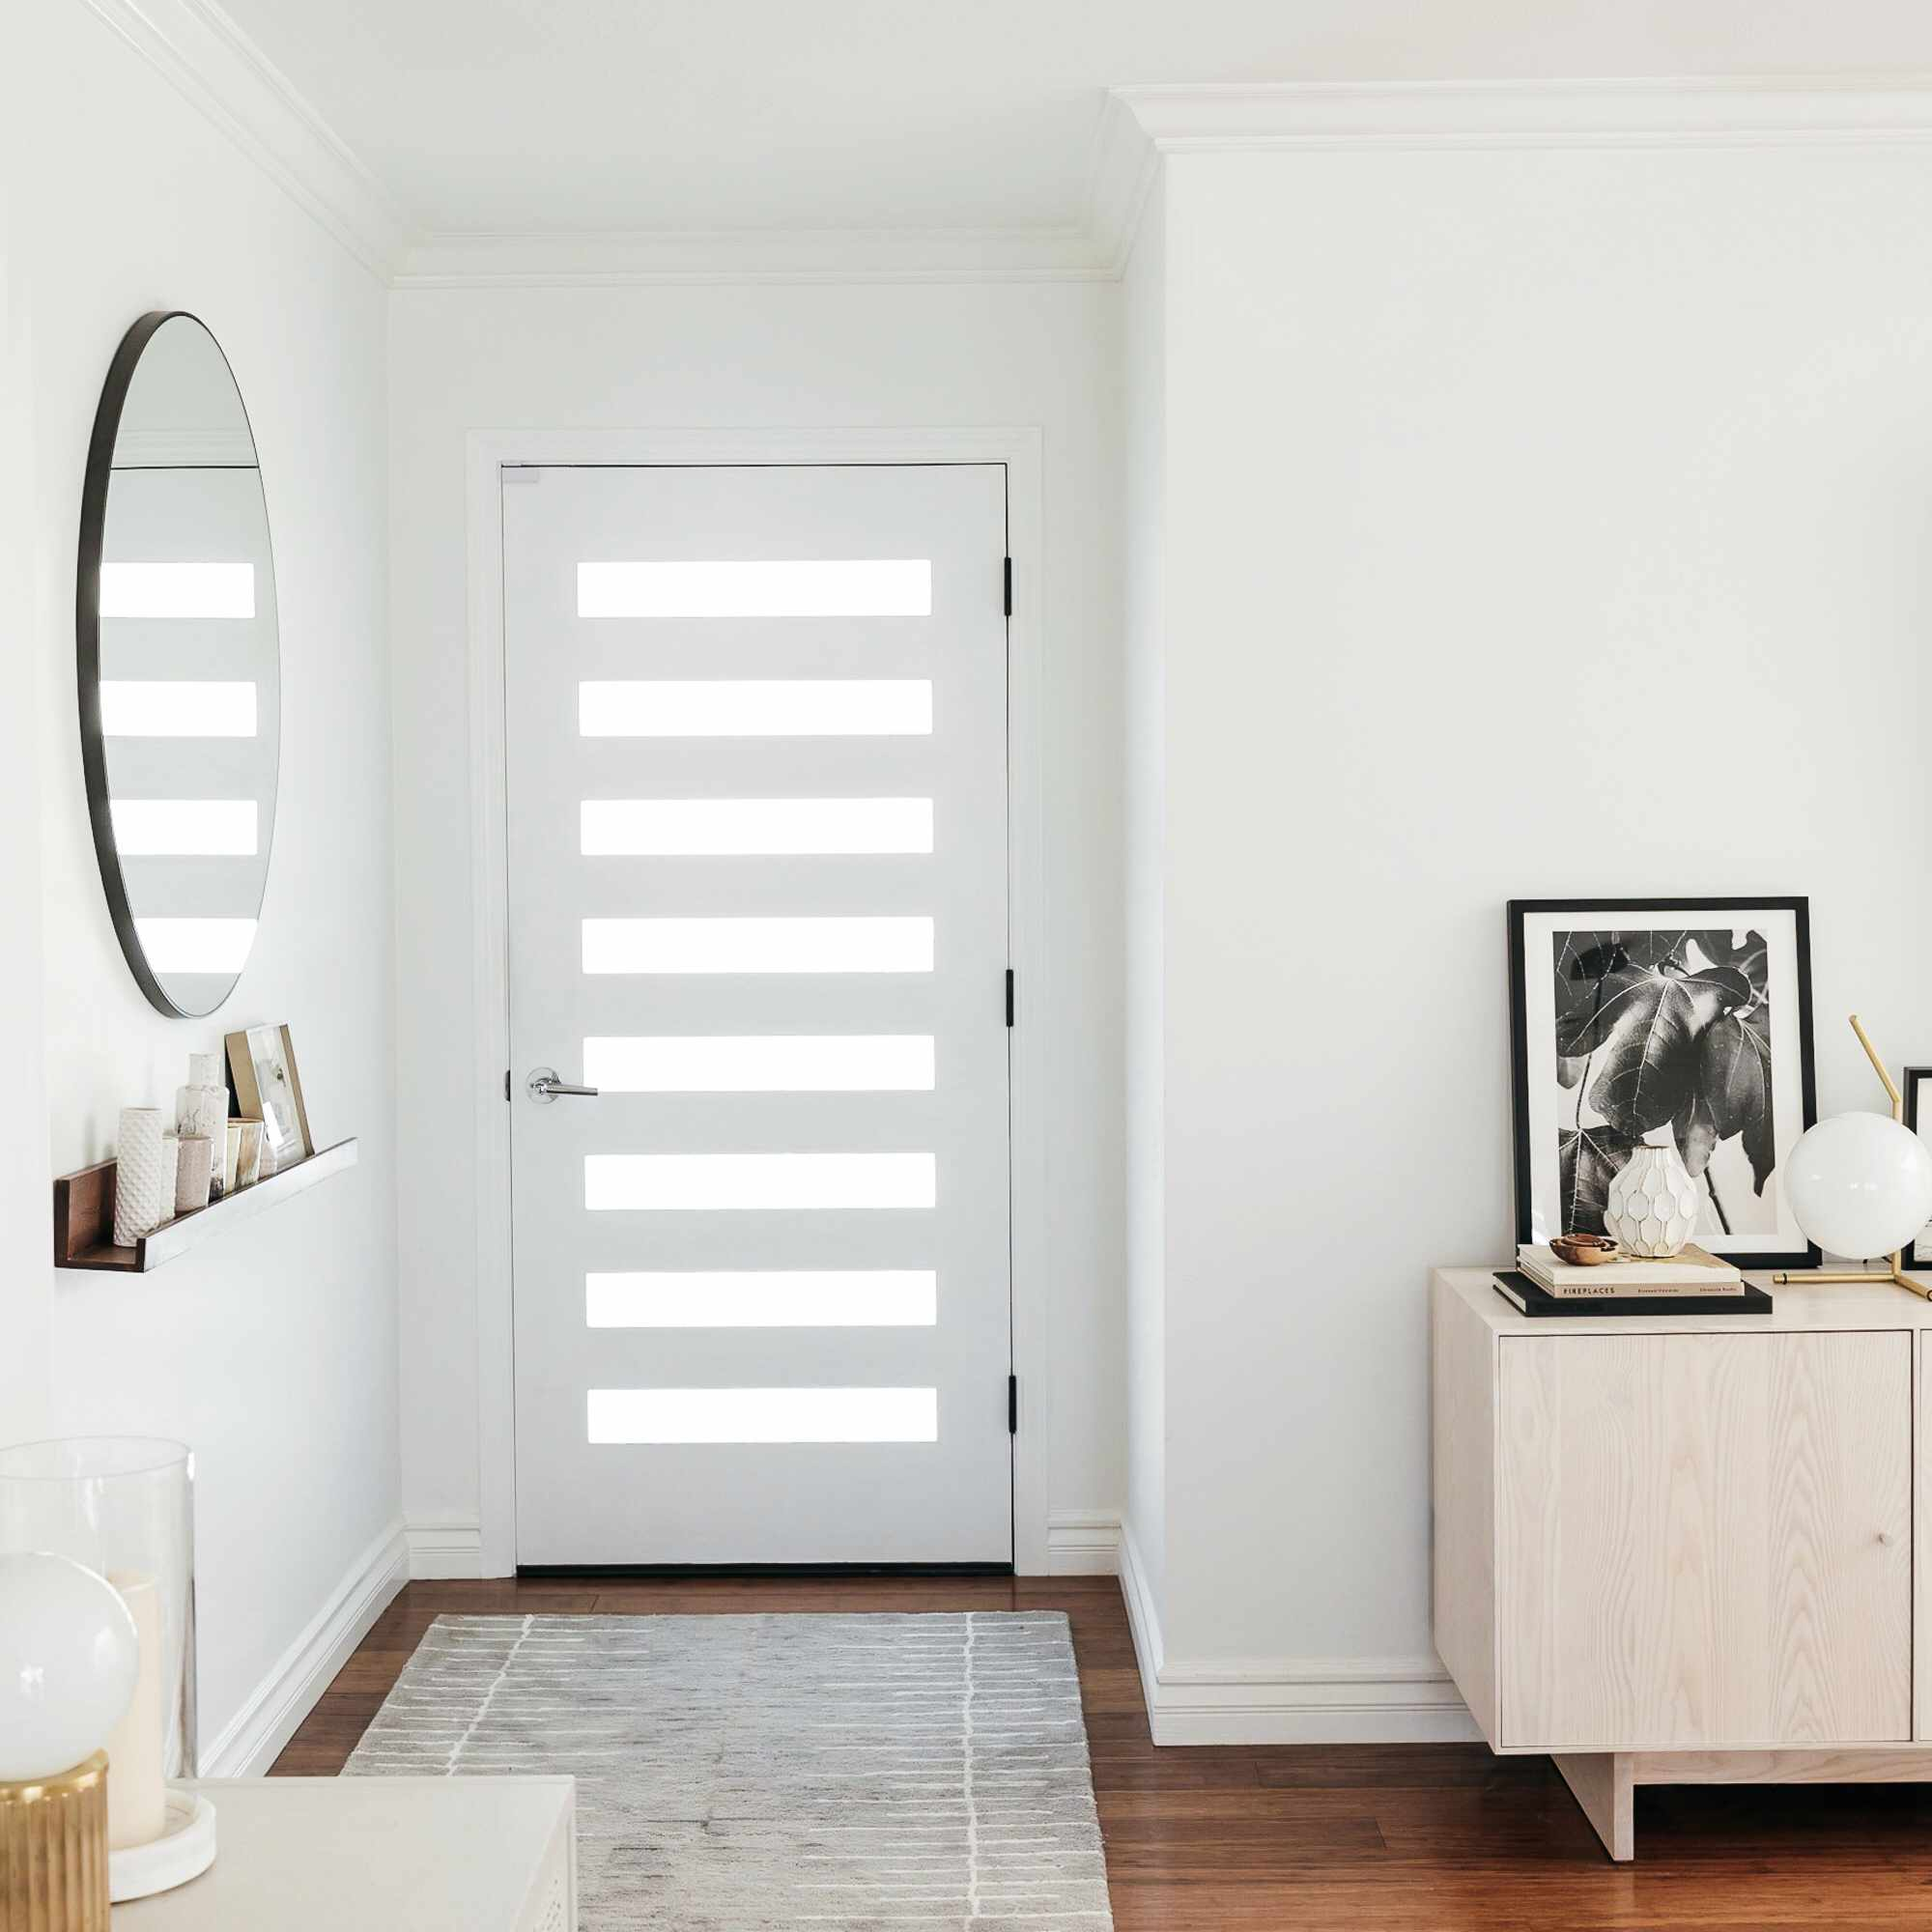 Small entryway with mirror reflecting light from the door